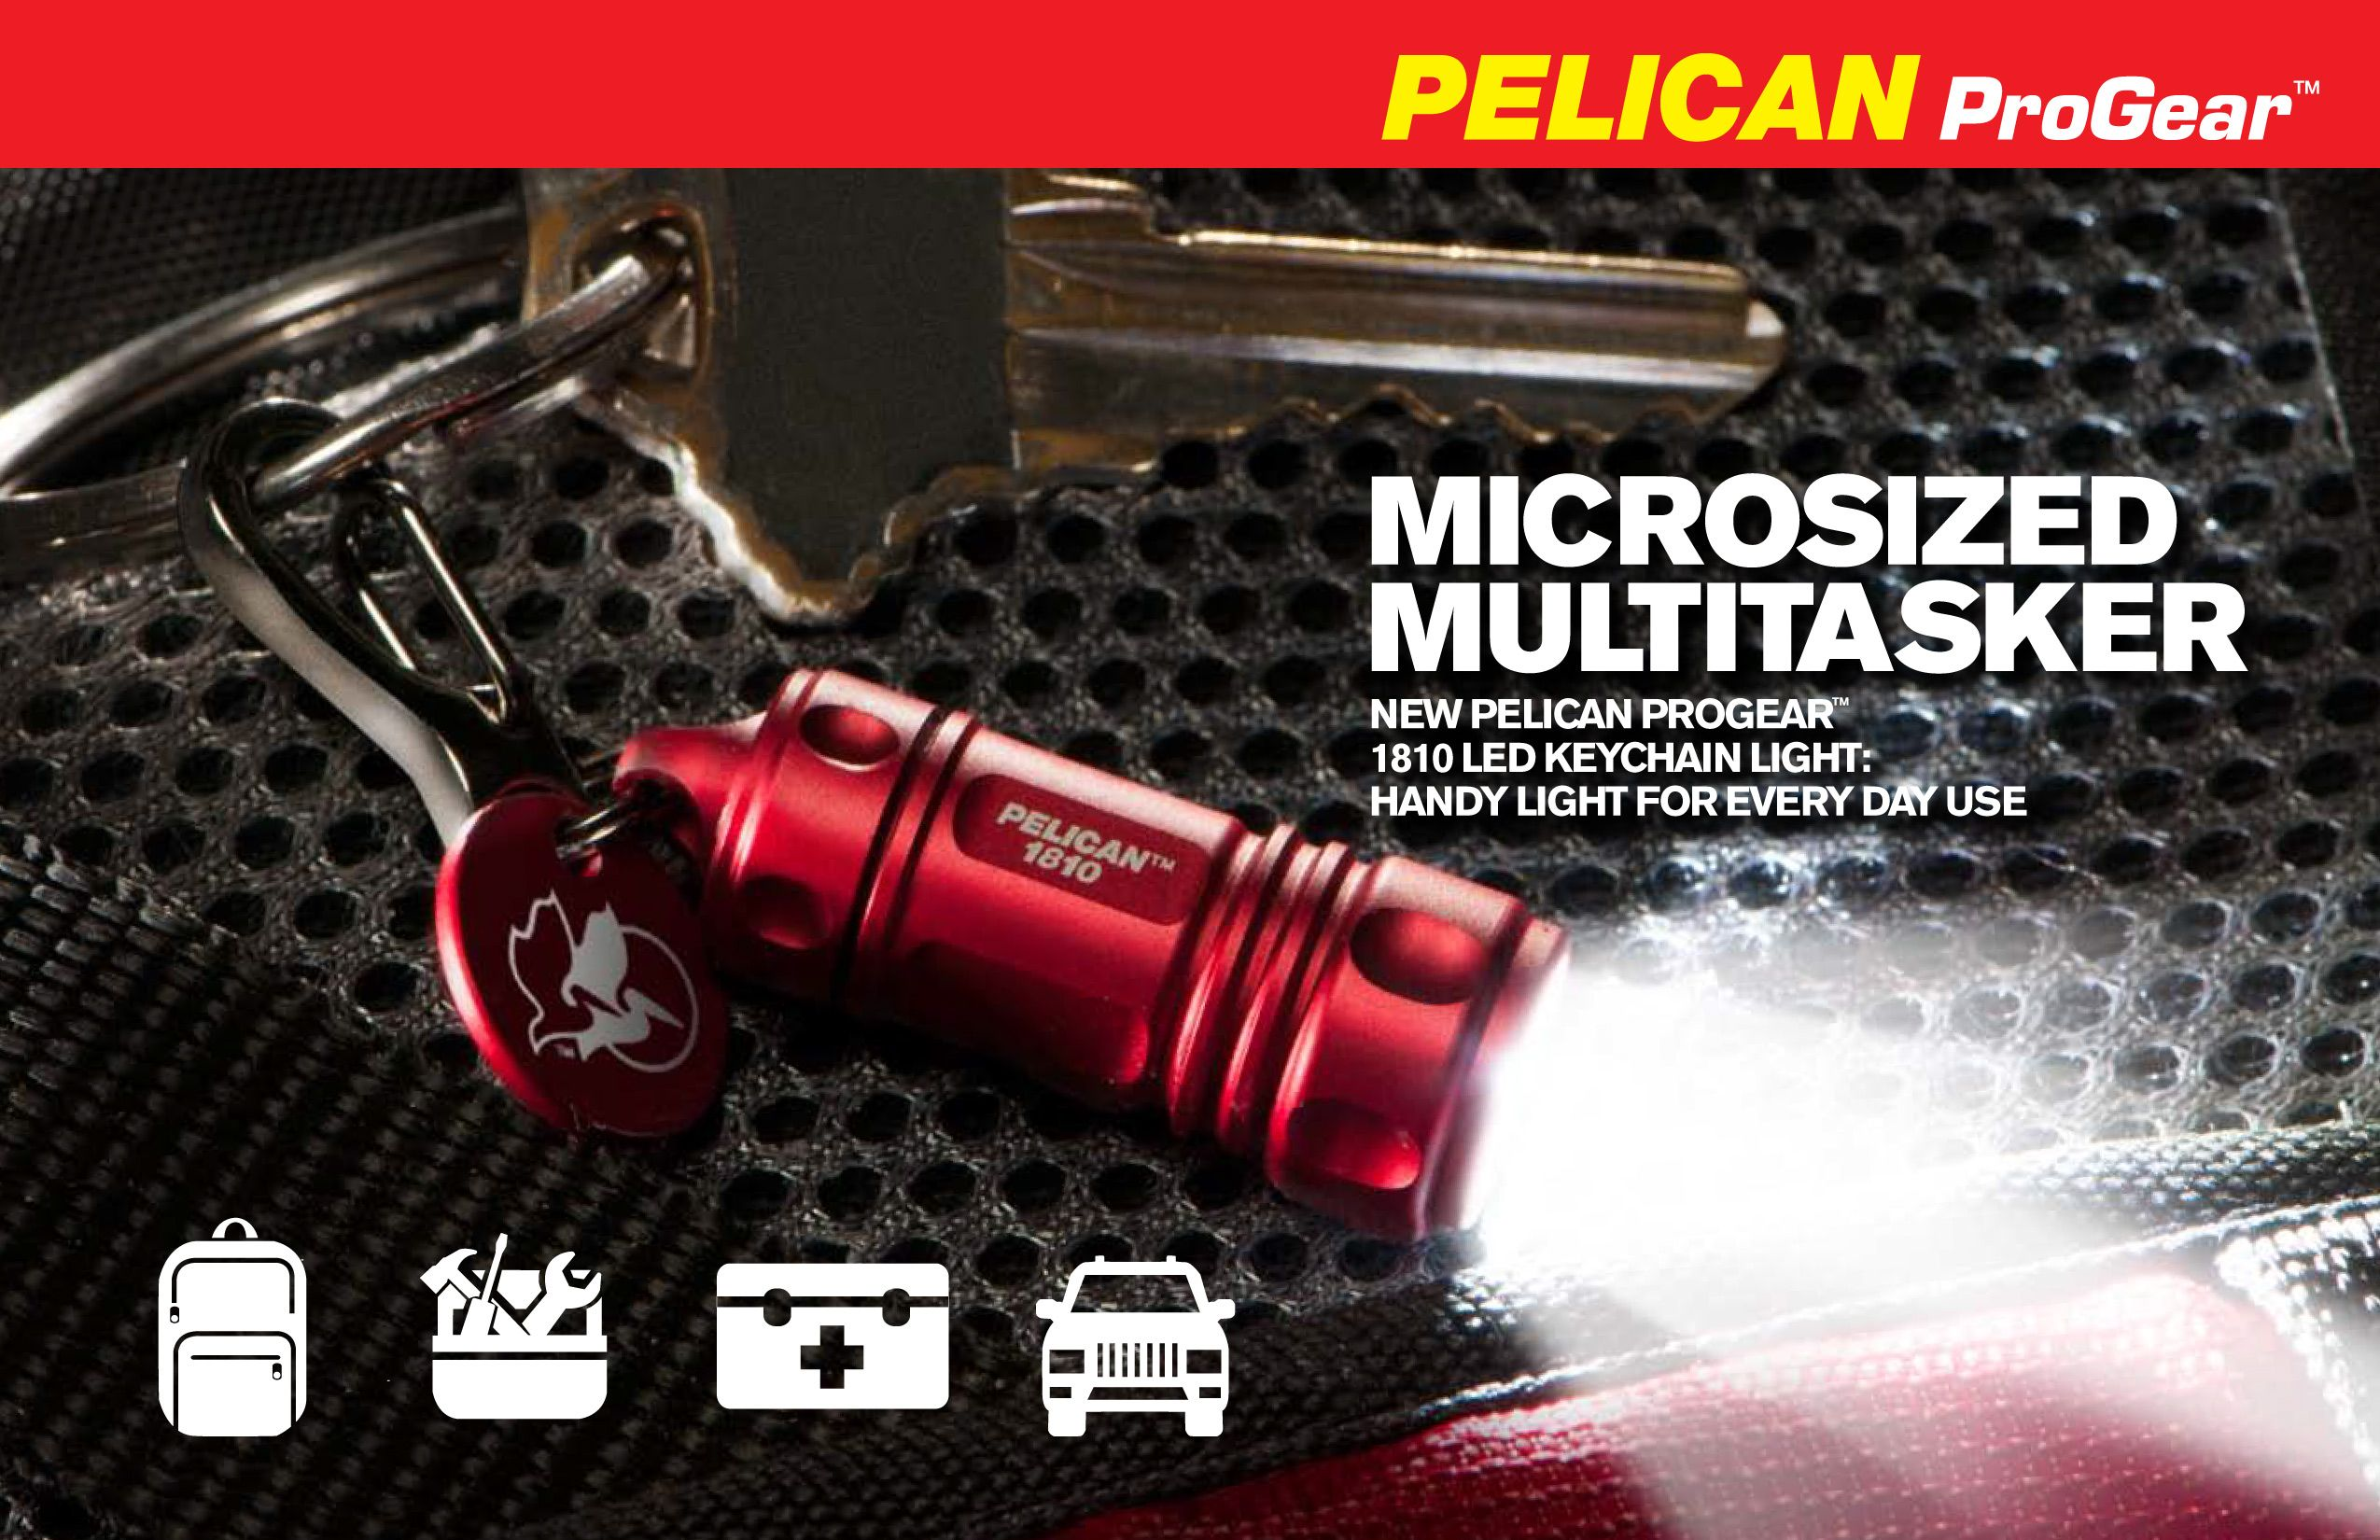 Pelican 1810 Led Flat Tires Missing Headphones Needle In A Haystack You Name It This New Everyday Personal Flashlight Wil Small Flashlights Flashlight Led